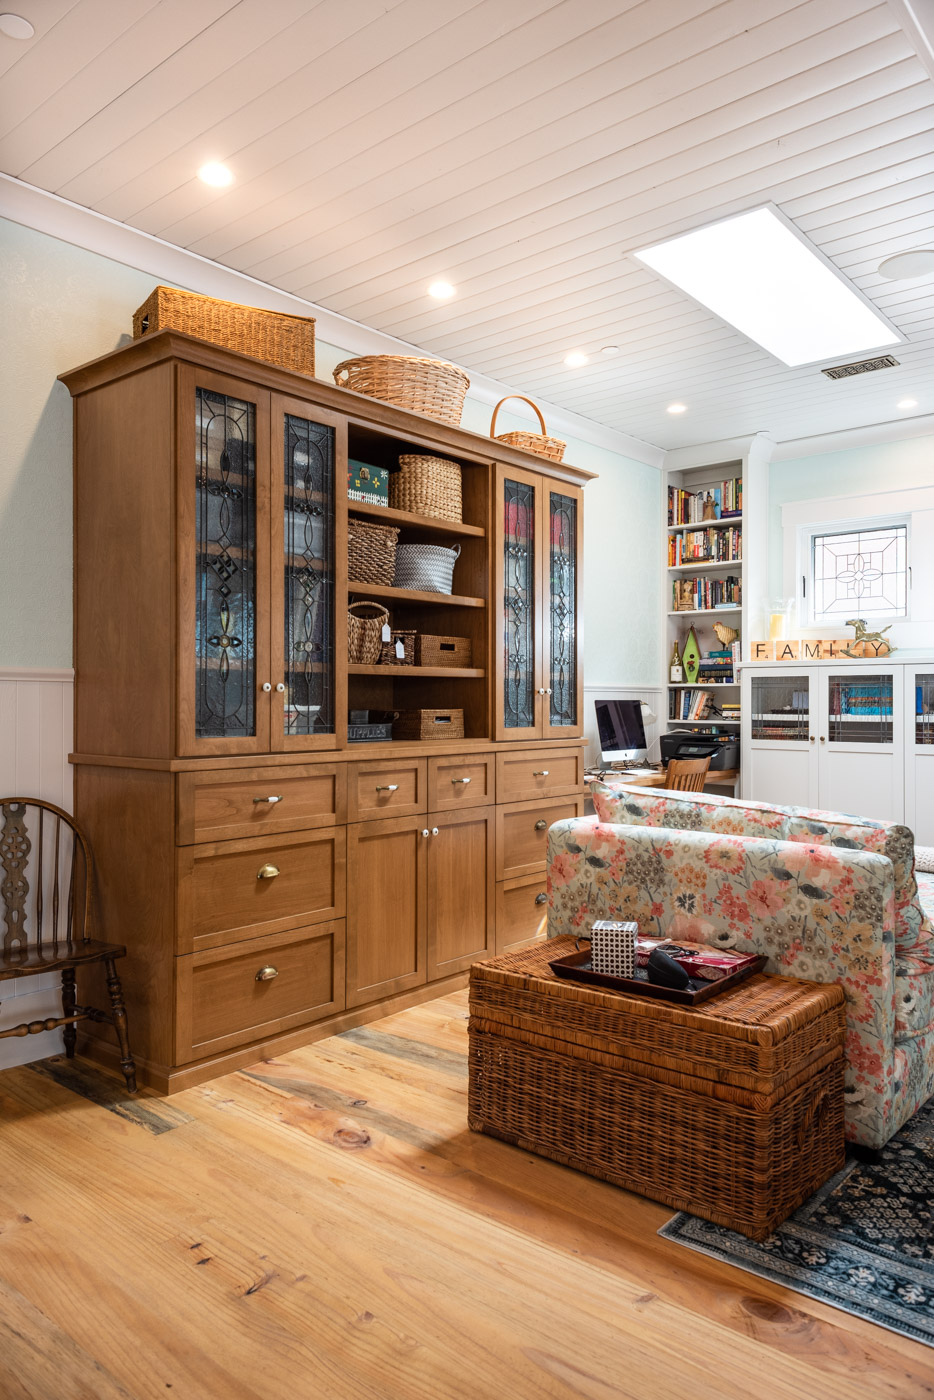 Eclectic Country Craftsman custom living room built in display case with custom wood stained cabinets